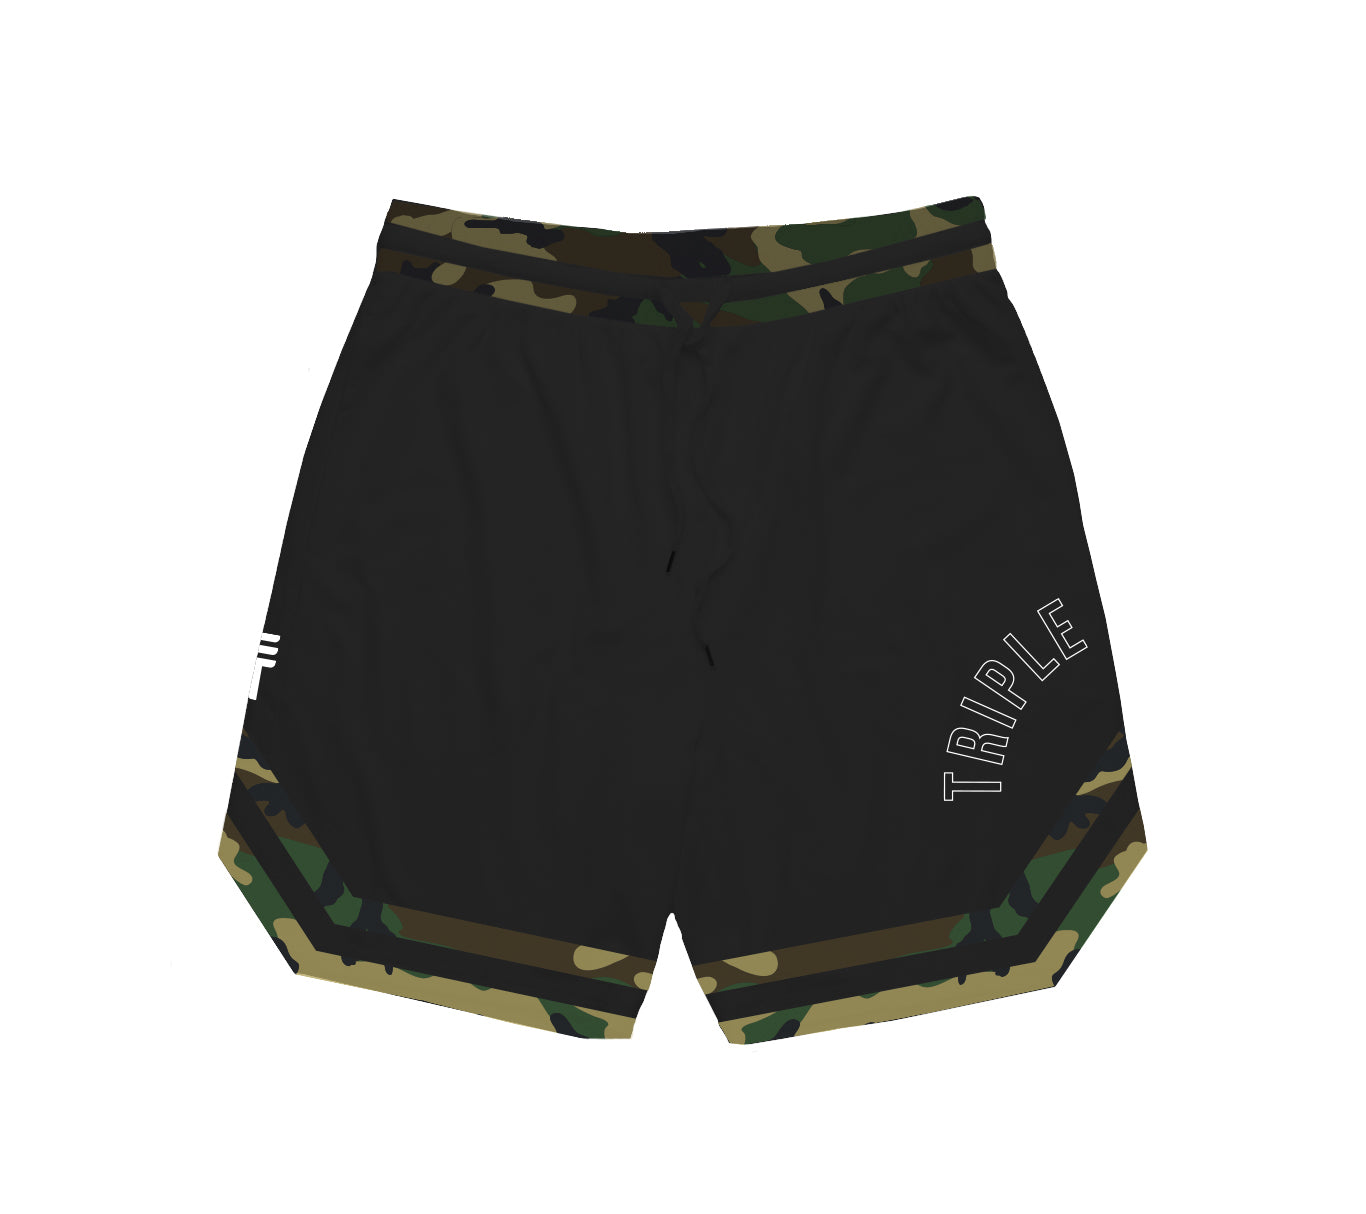 TRIPLE THREAT CAMO SHORTS - BLACK